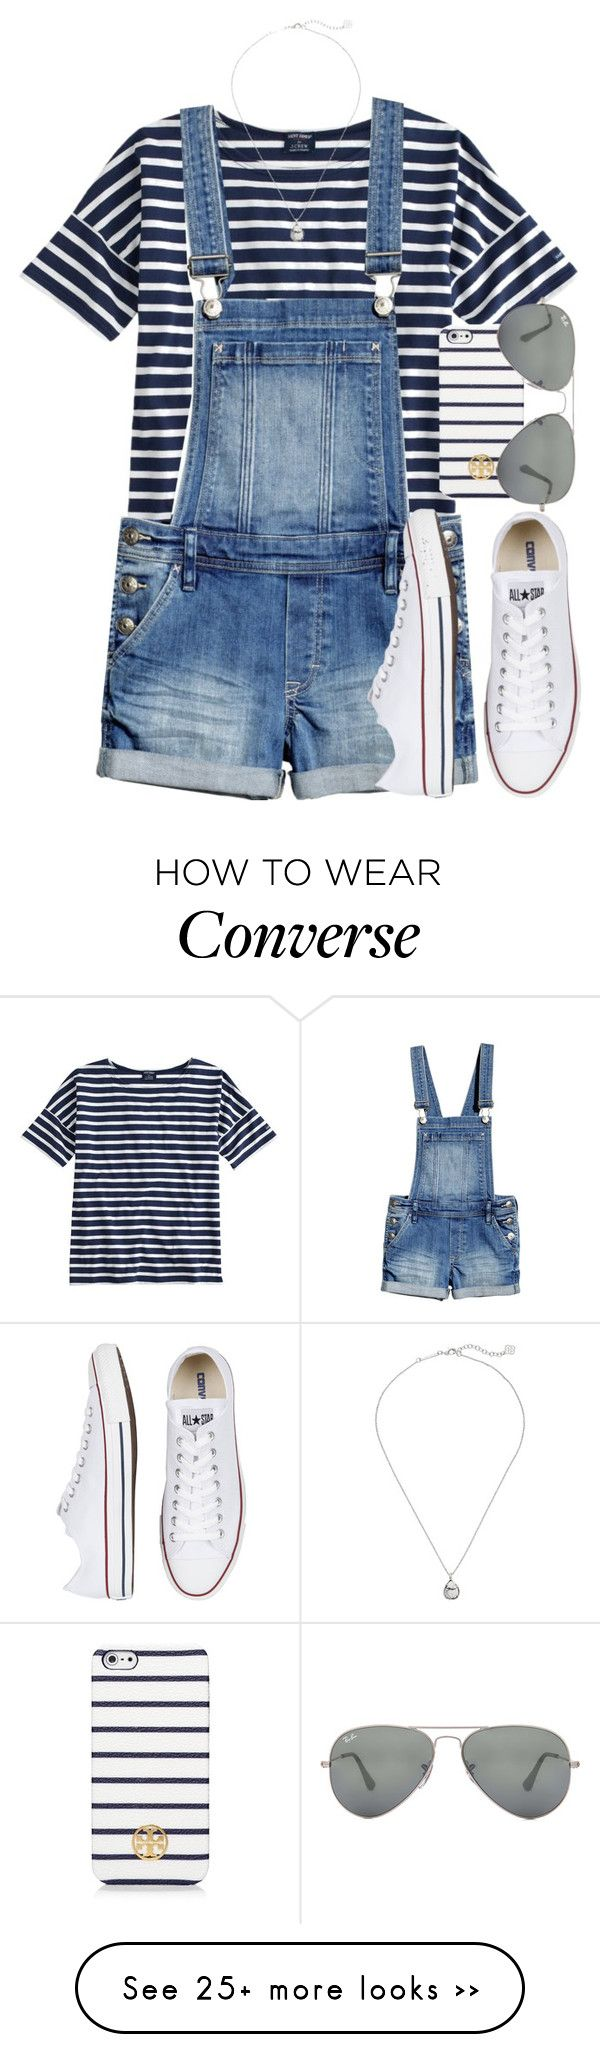 """stripes"" by tabooty on Polyvore featuring Saint James, Converse, Kendra Scott, Tory Burch and Ray-Ban"